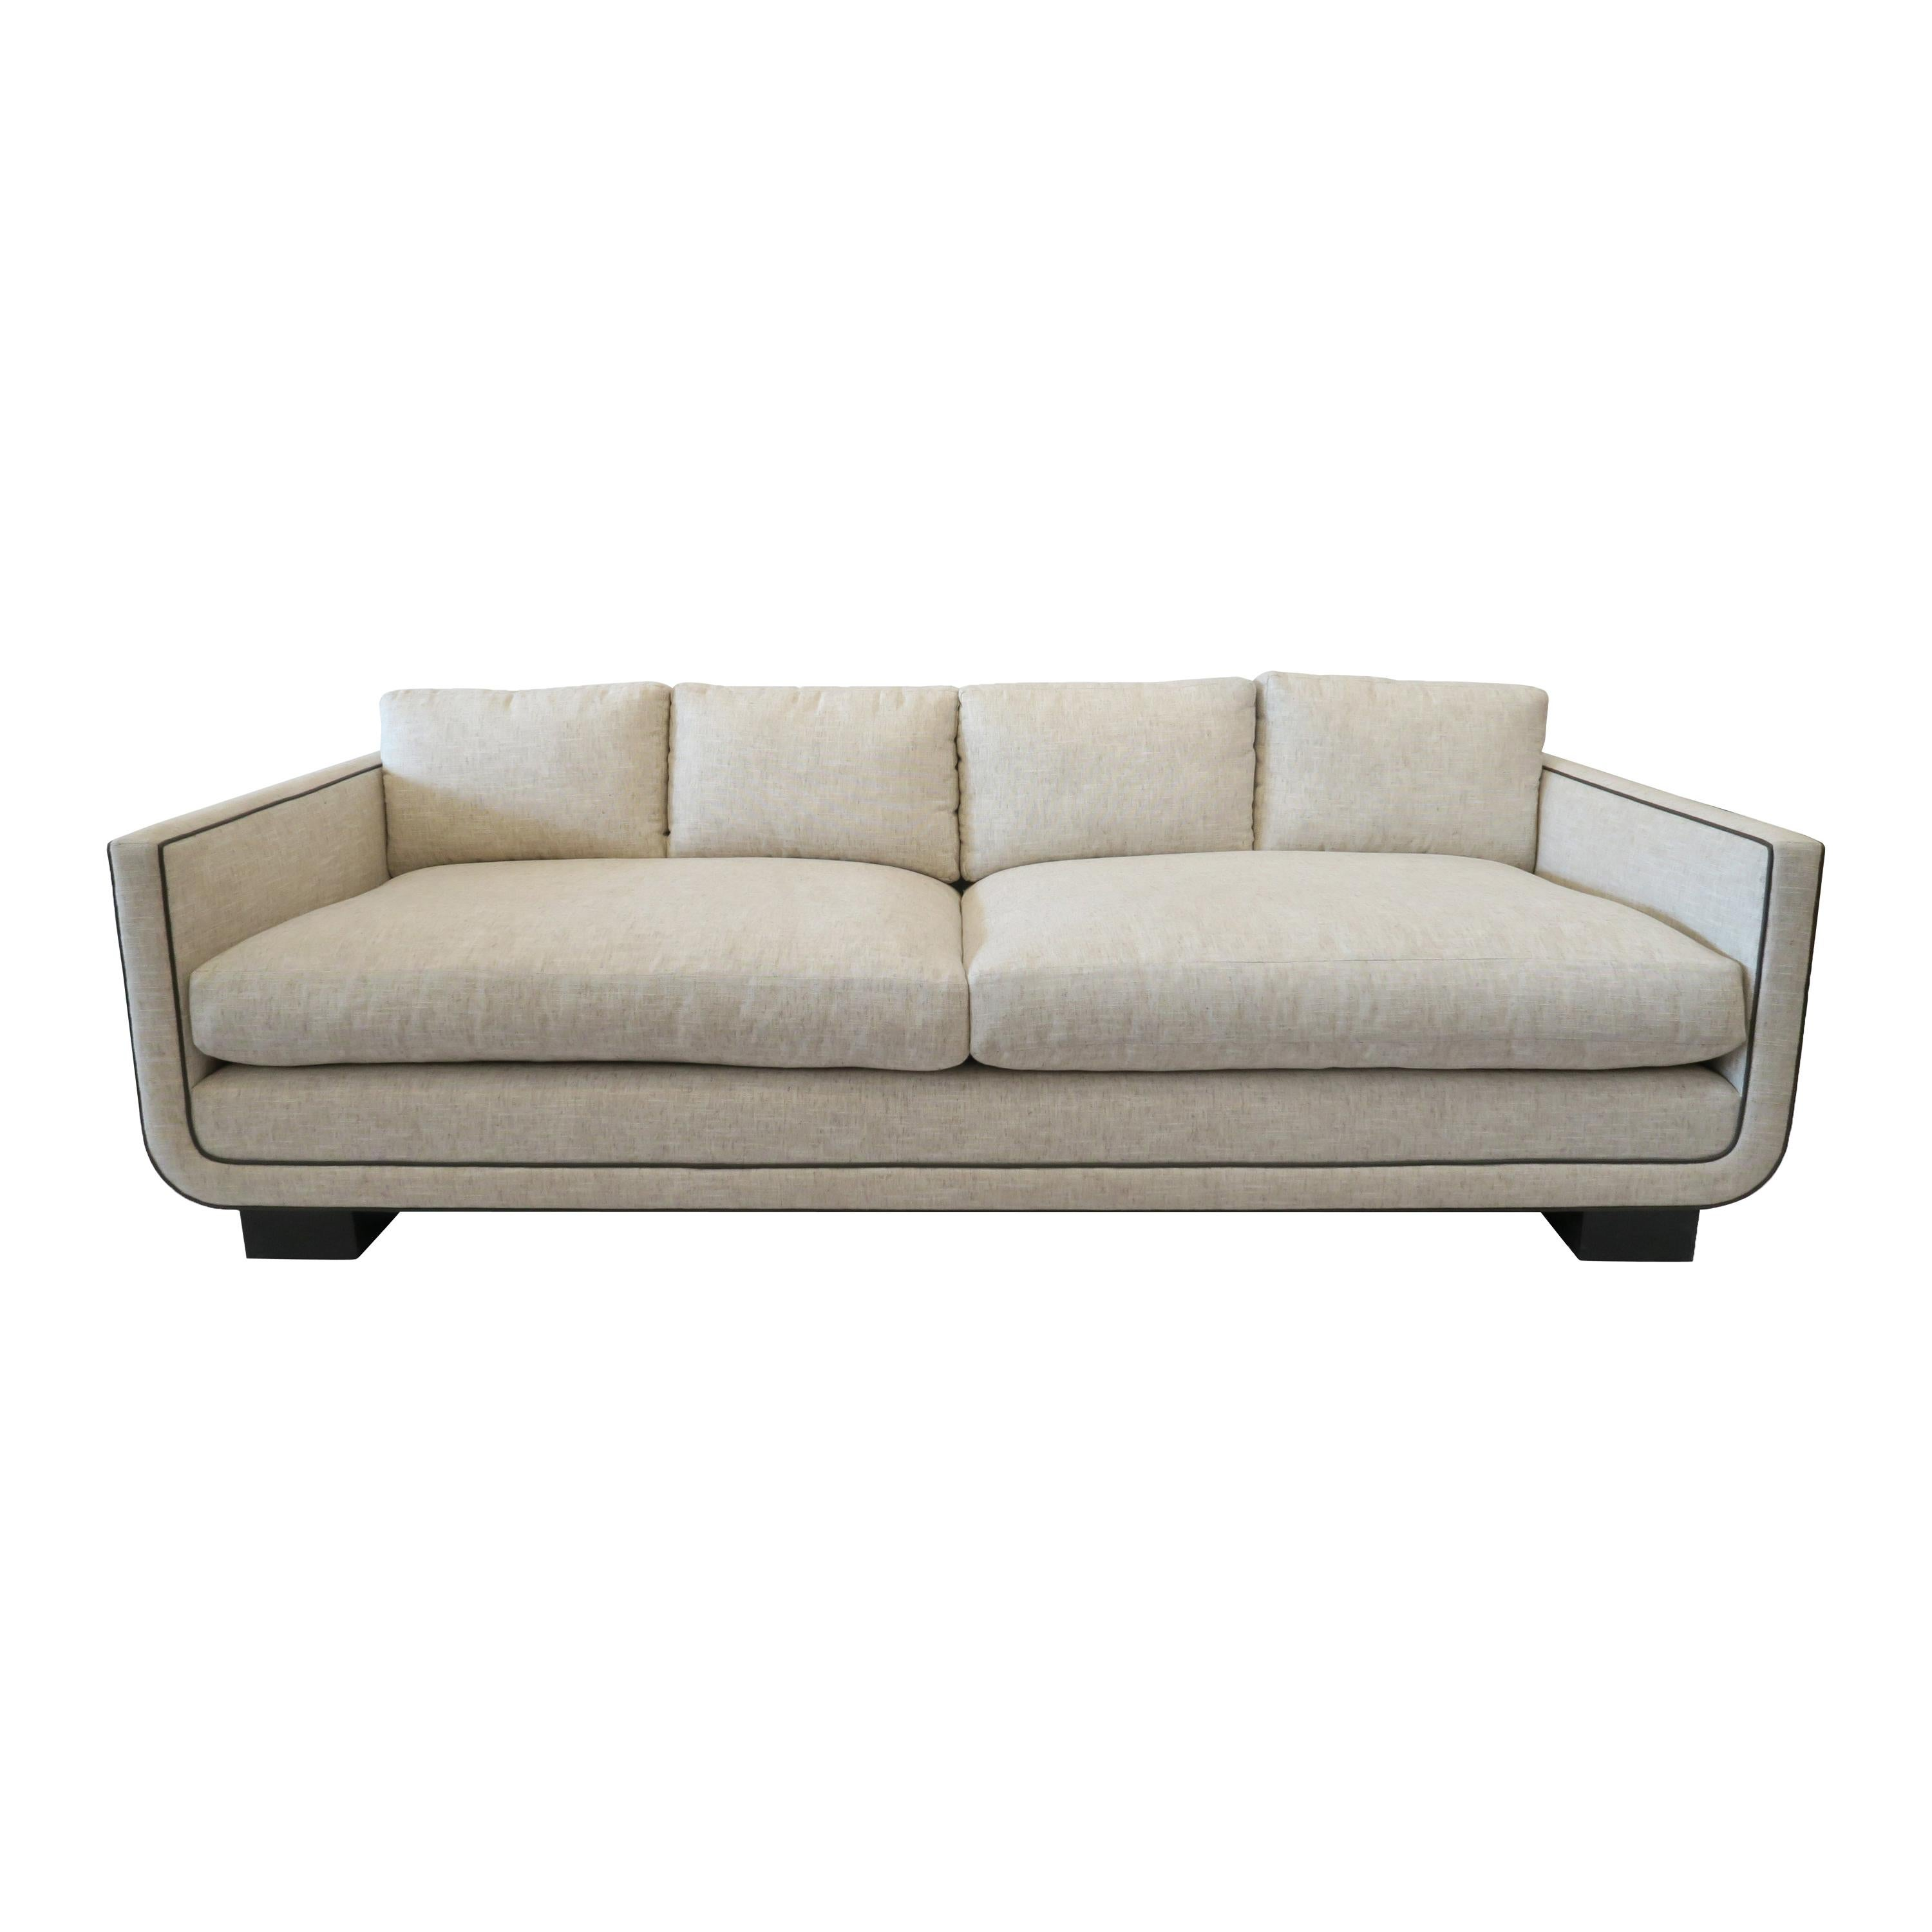 Modern Streamline Sofa with Curved Frame Detail by Martin and Brockett, Linen